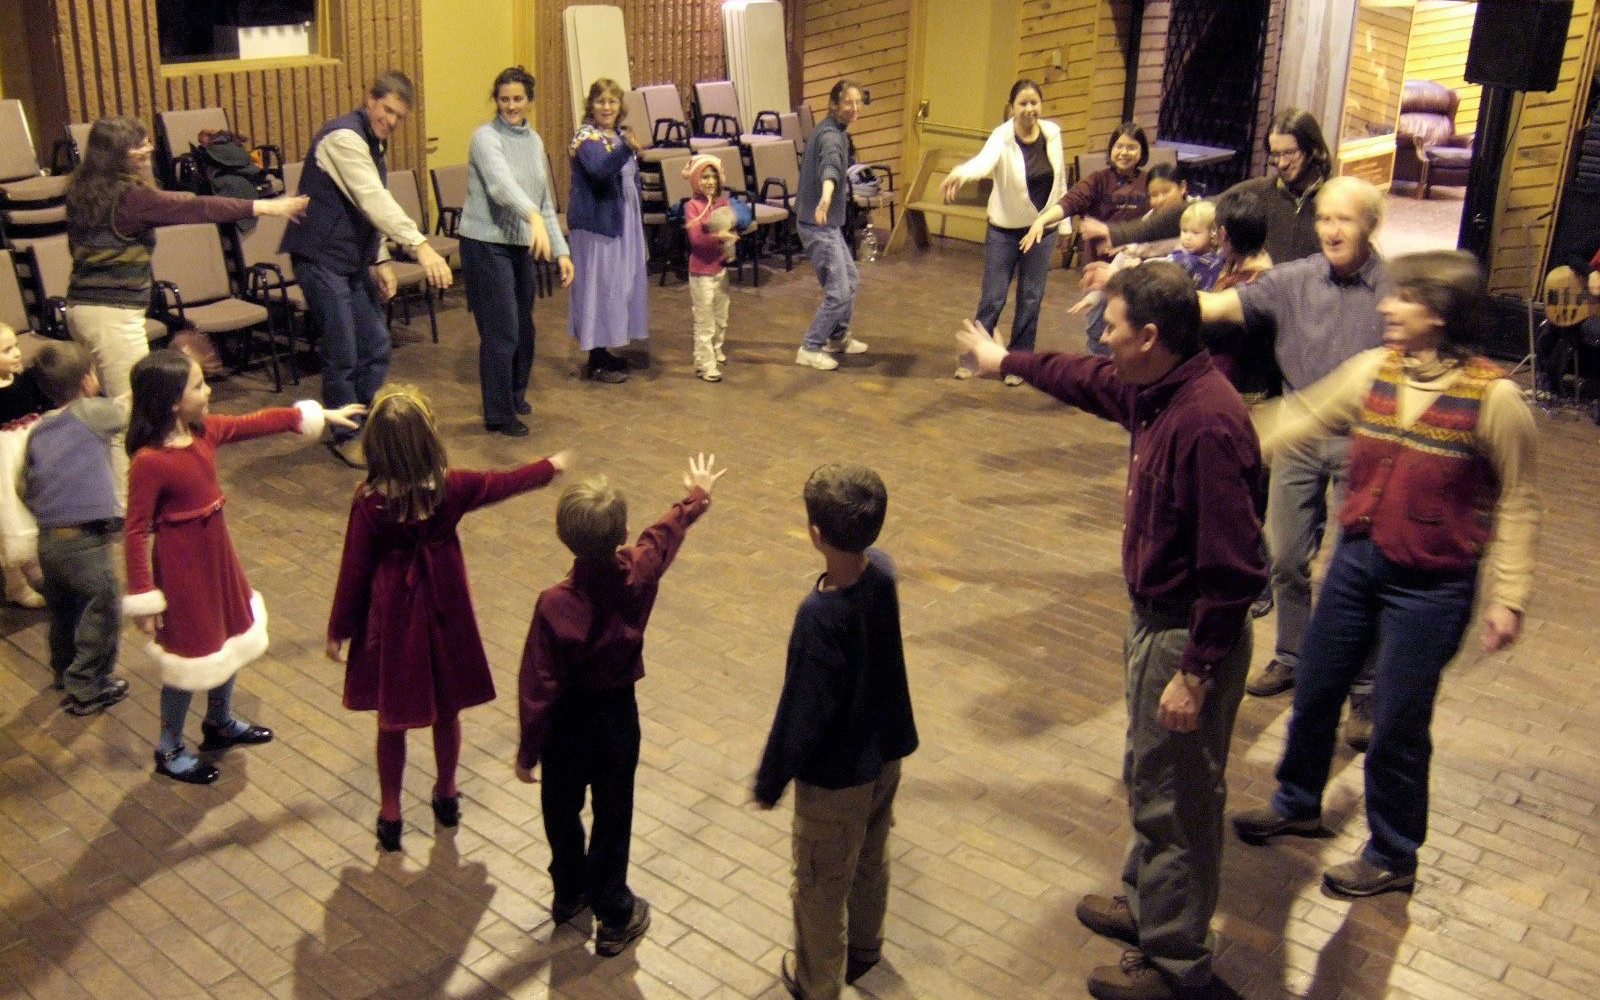 People in a circle dancing